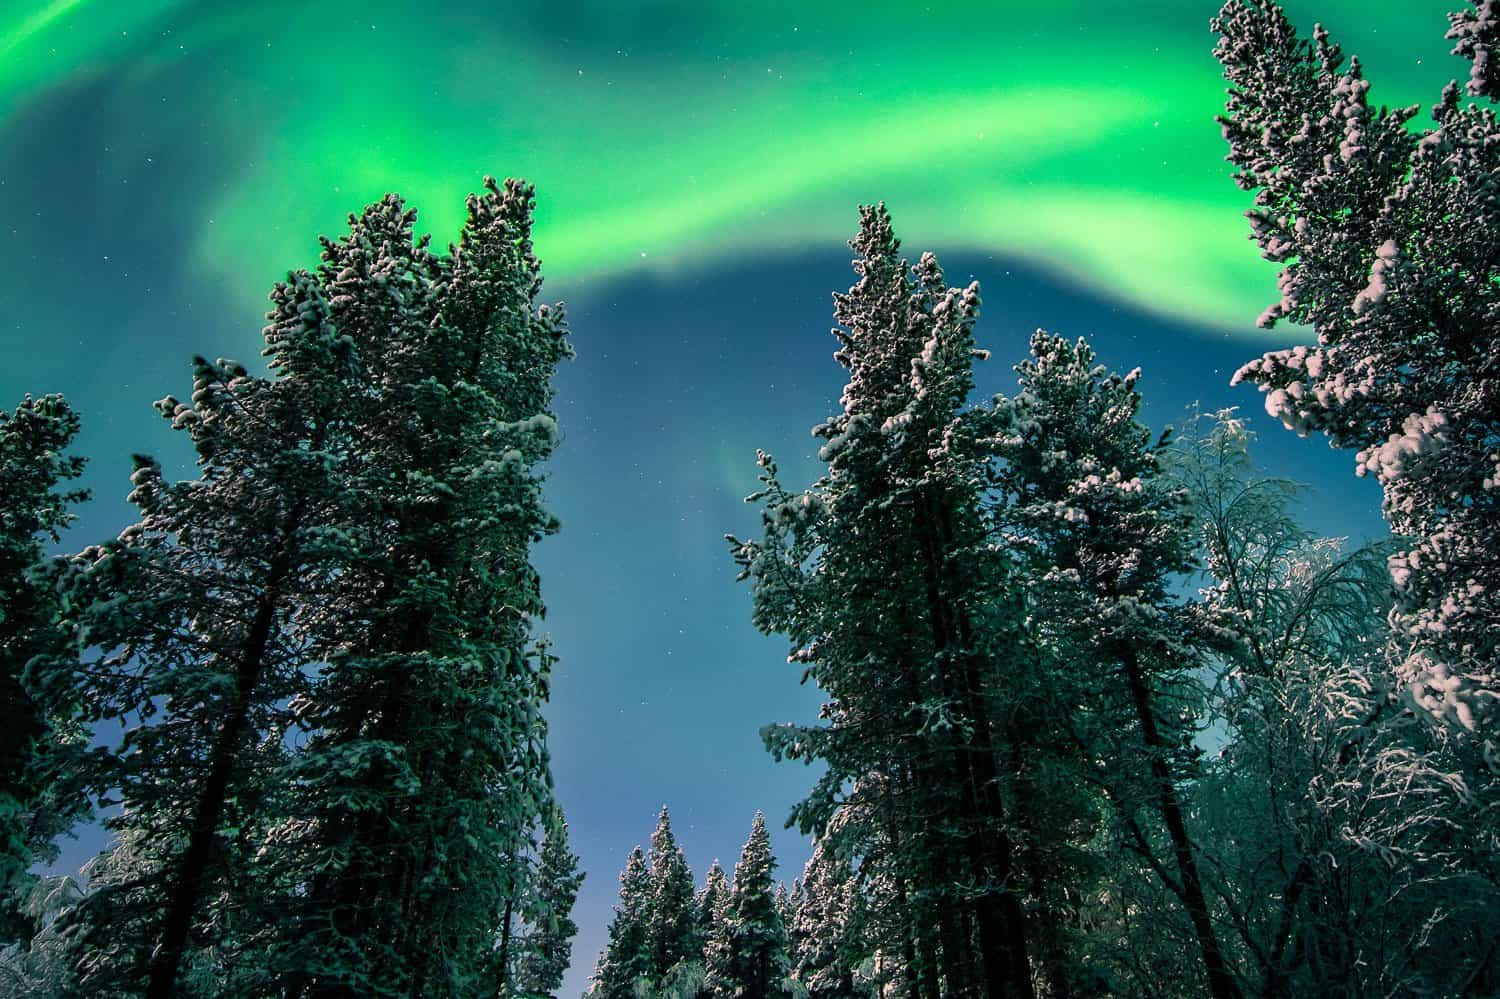 Northern Lights in Europe - Giuseppe Milo via Flickr